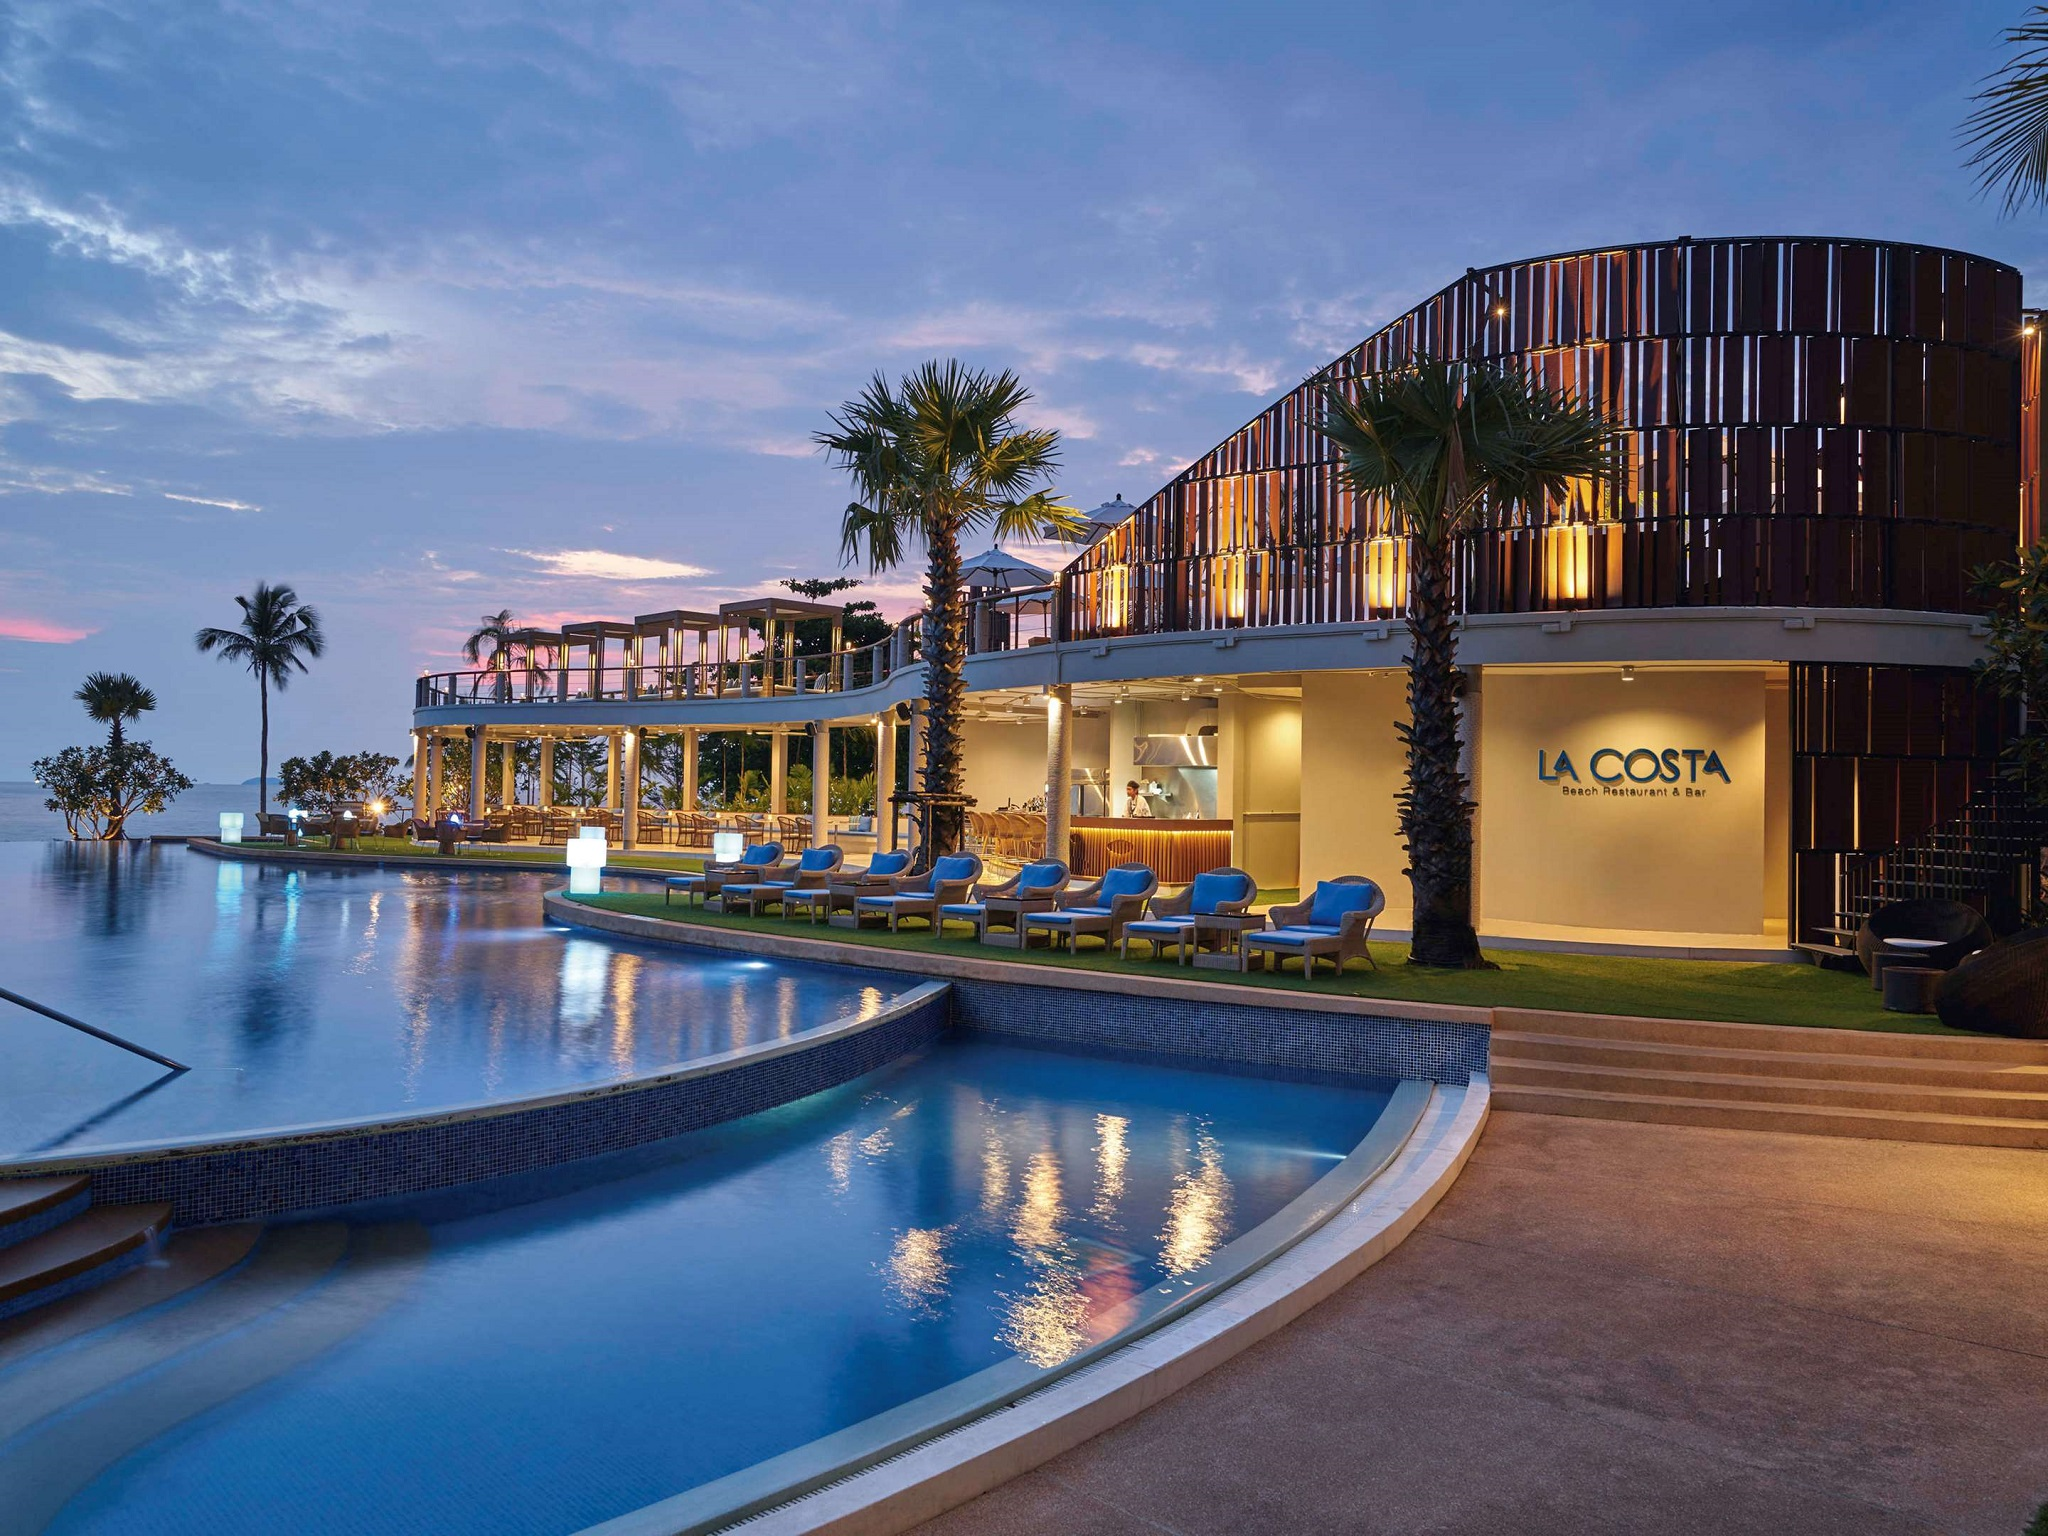 Movenpick Siam Hotel Pattaya - Top 5 best luxury hotels in Pattaya